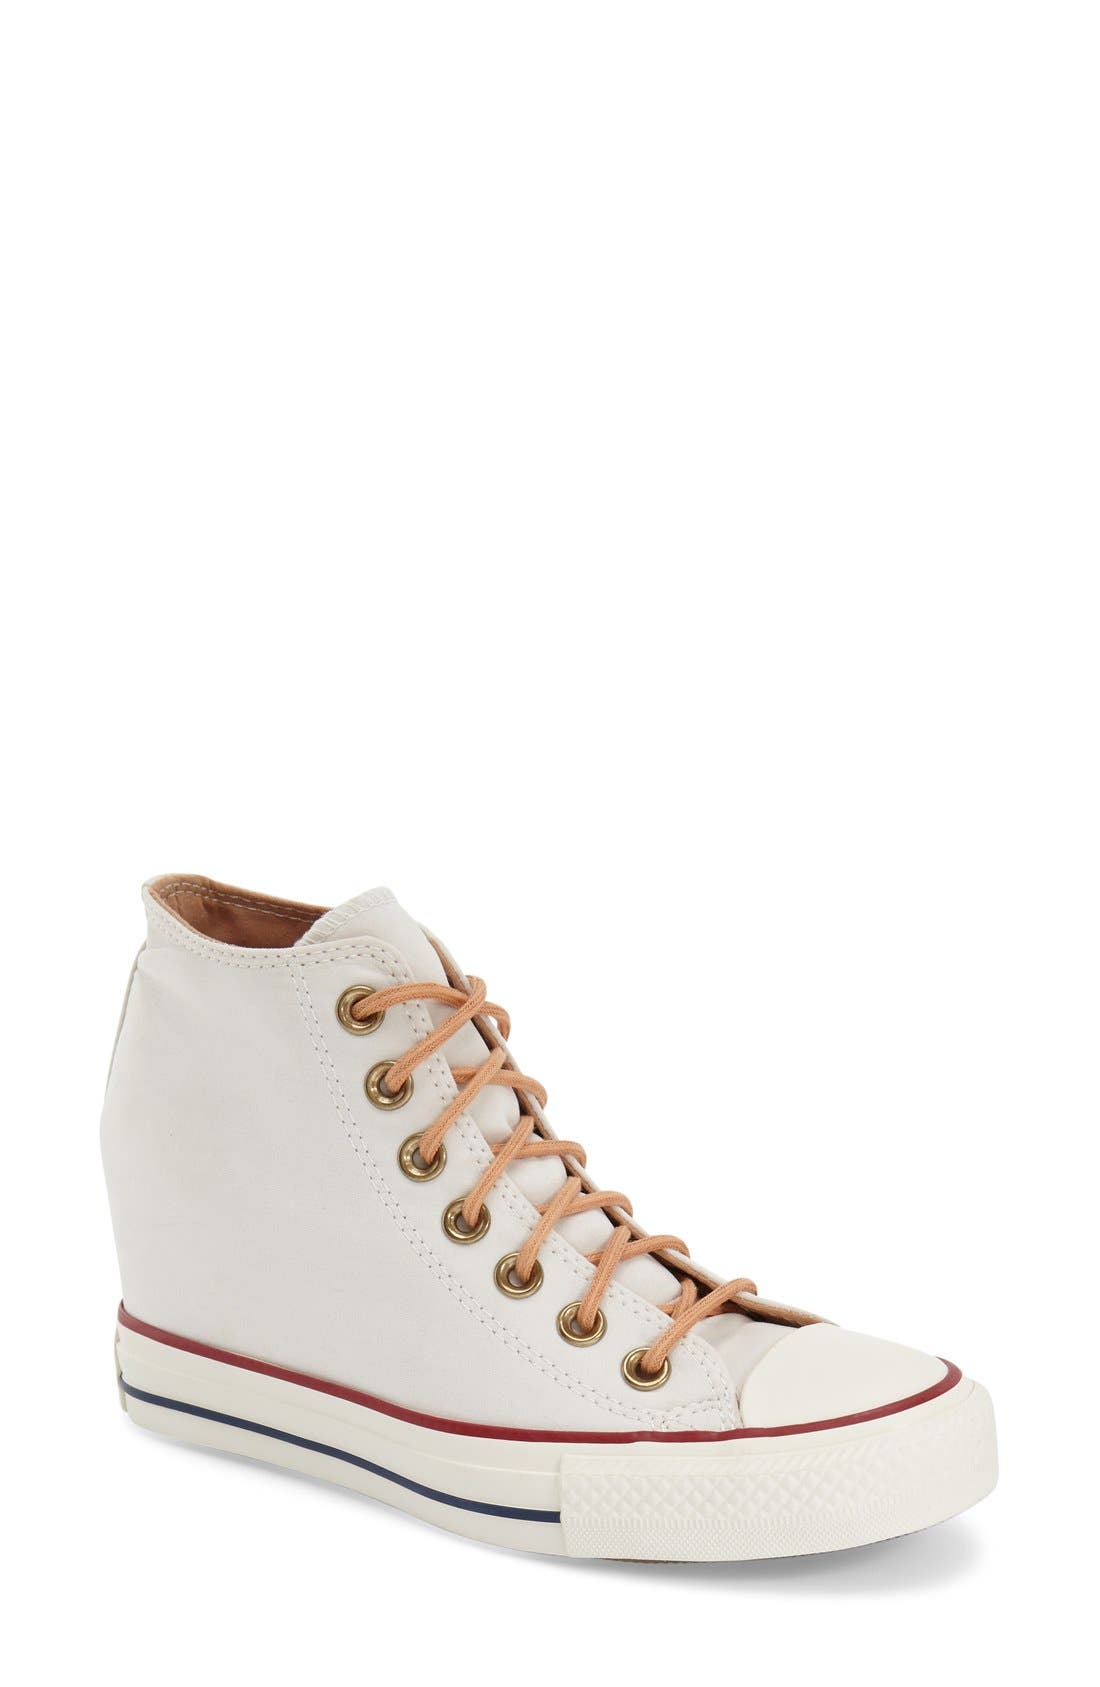 converse wedges white